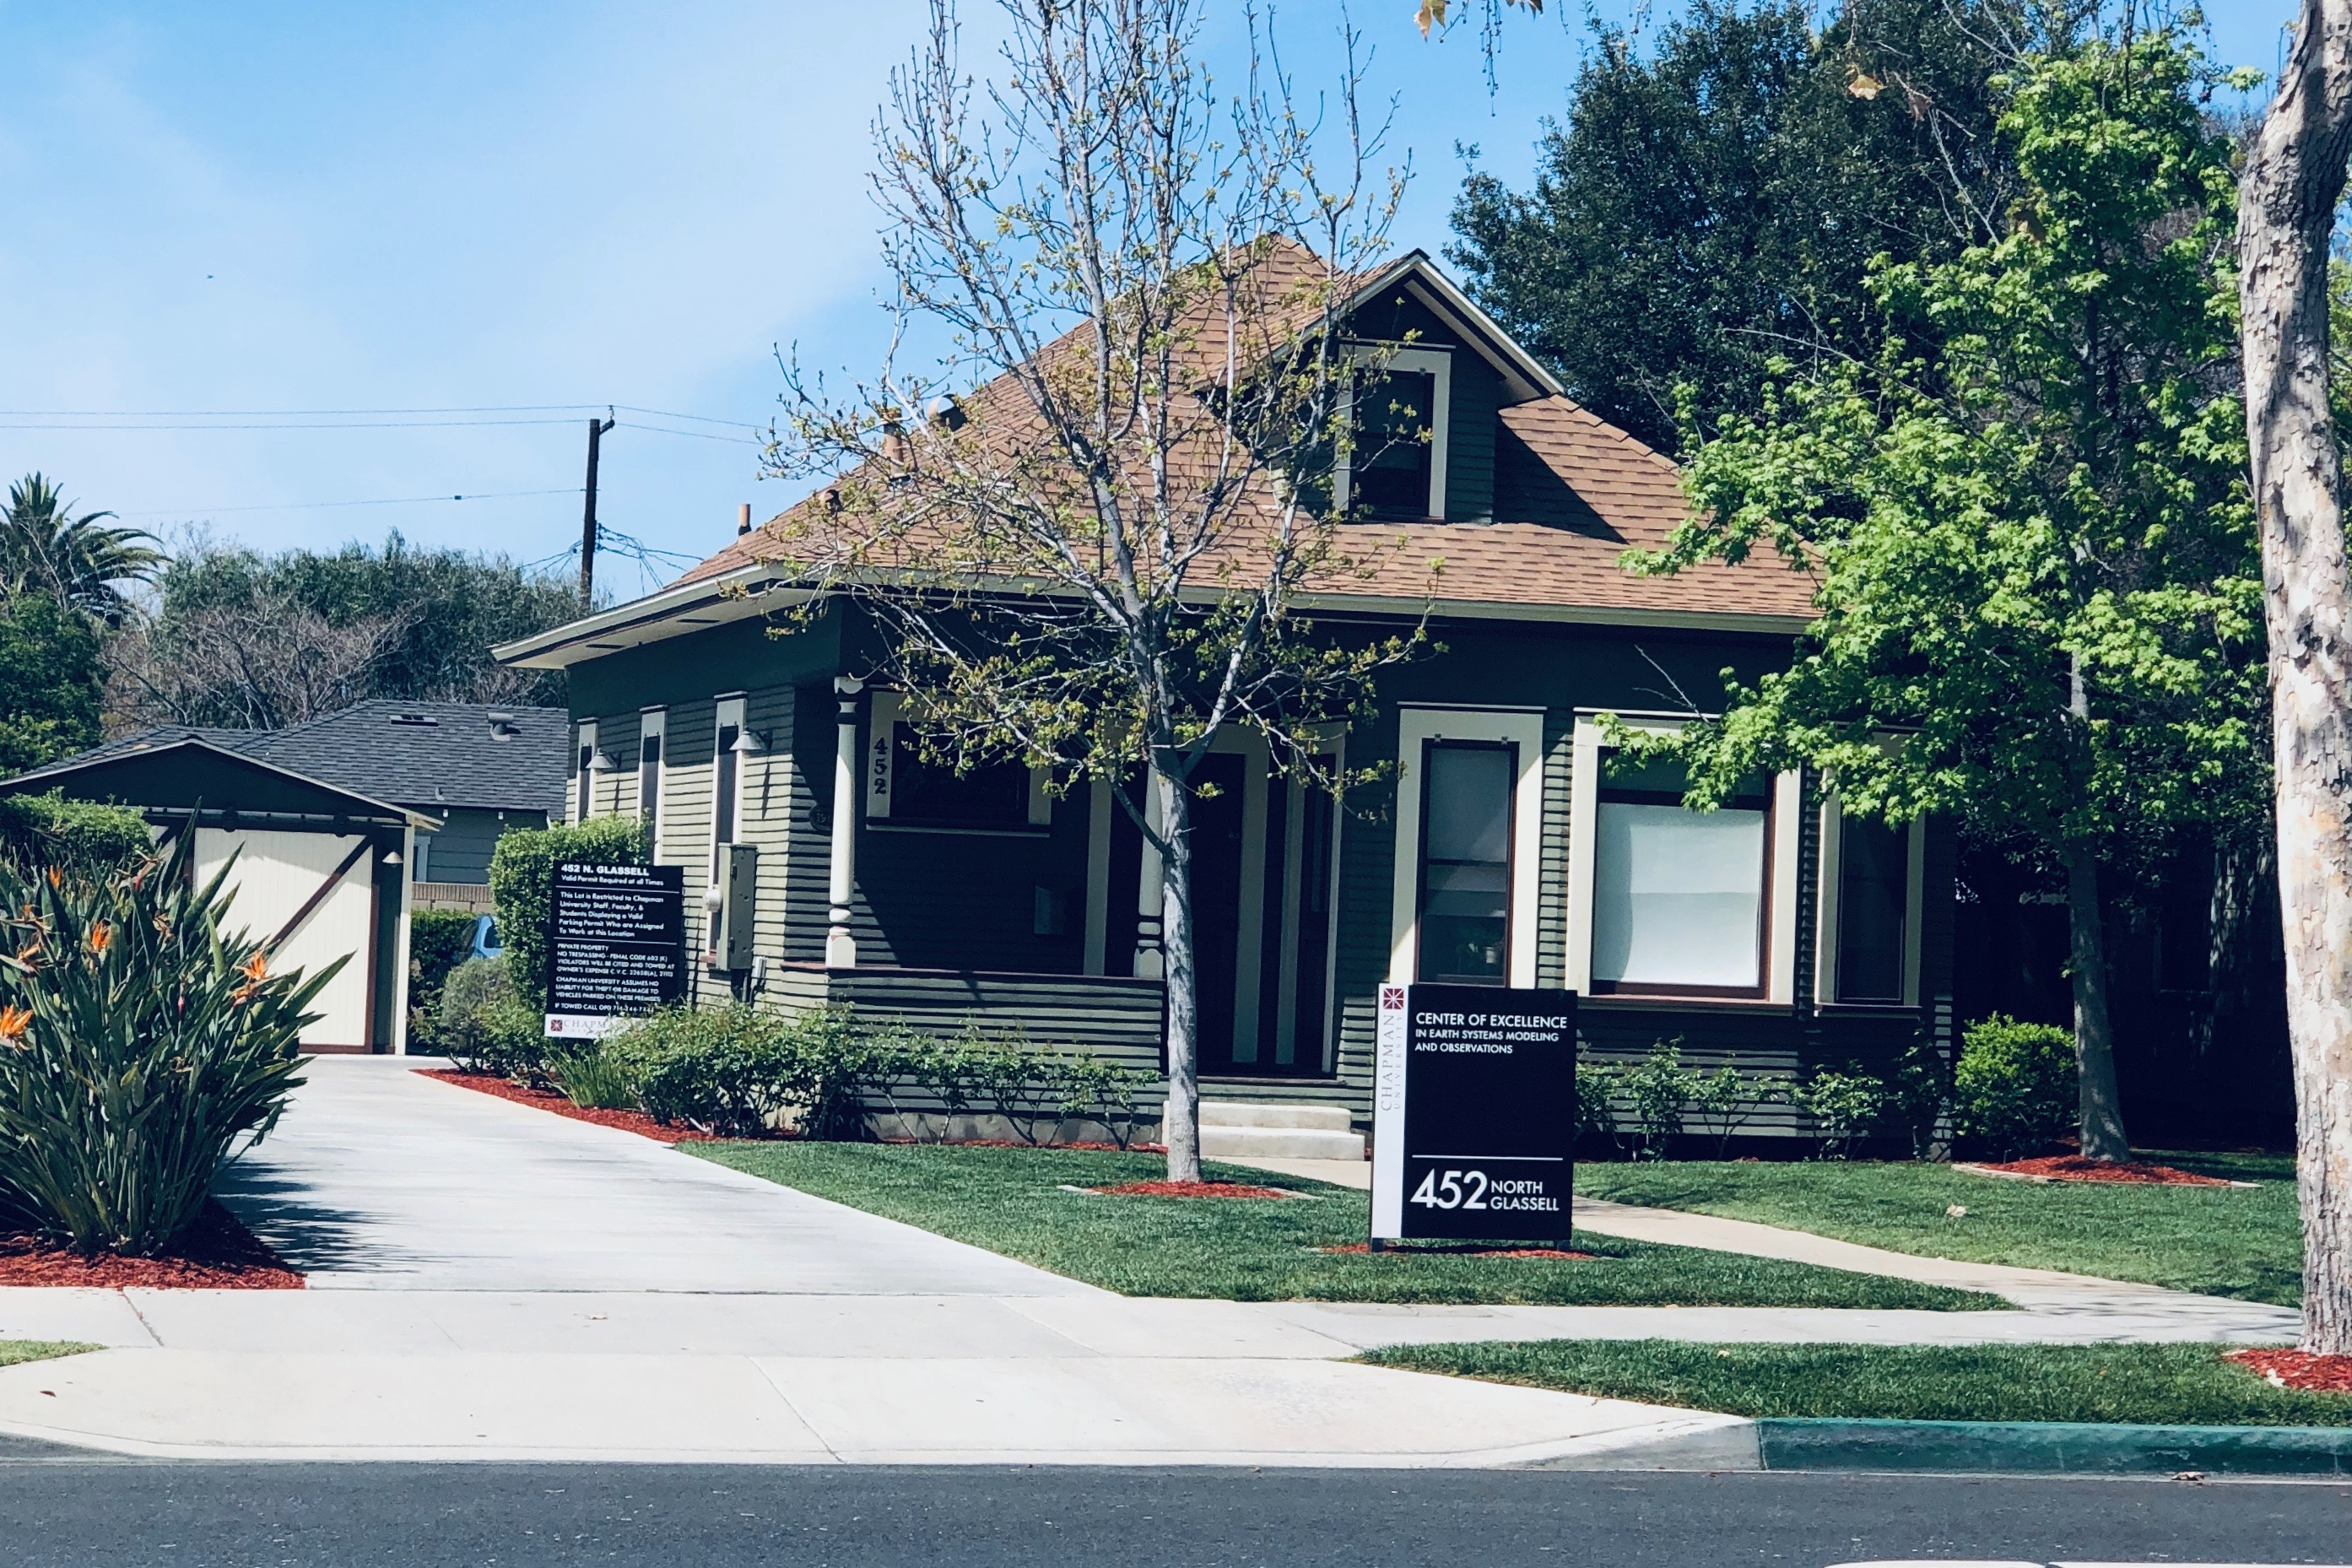 Chapman is not just a university; it's a major local landlord The housing market, development and culture of Old Towne Orange has been shaped by the presence of Chapman, despite pushback from local residents